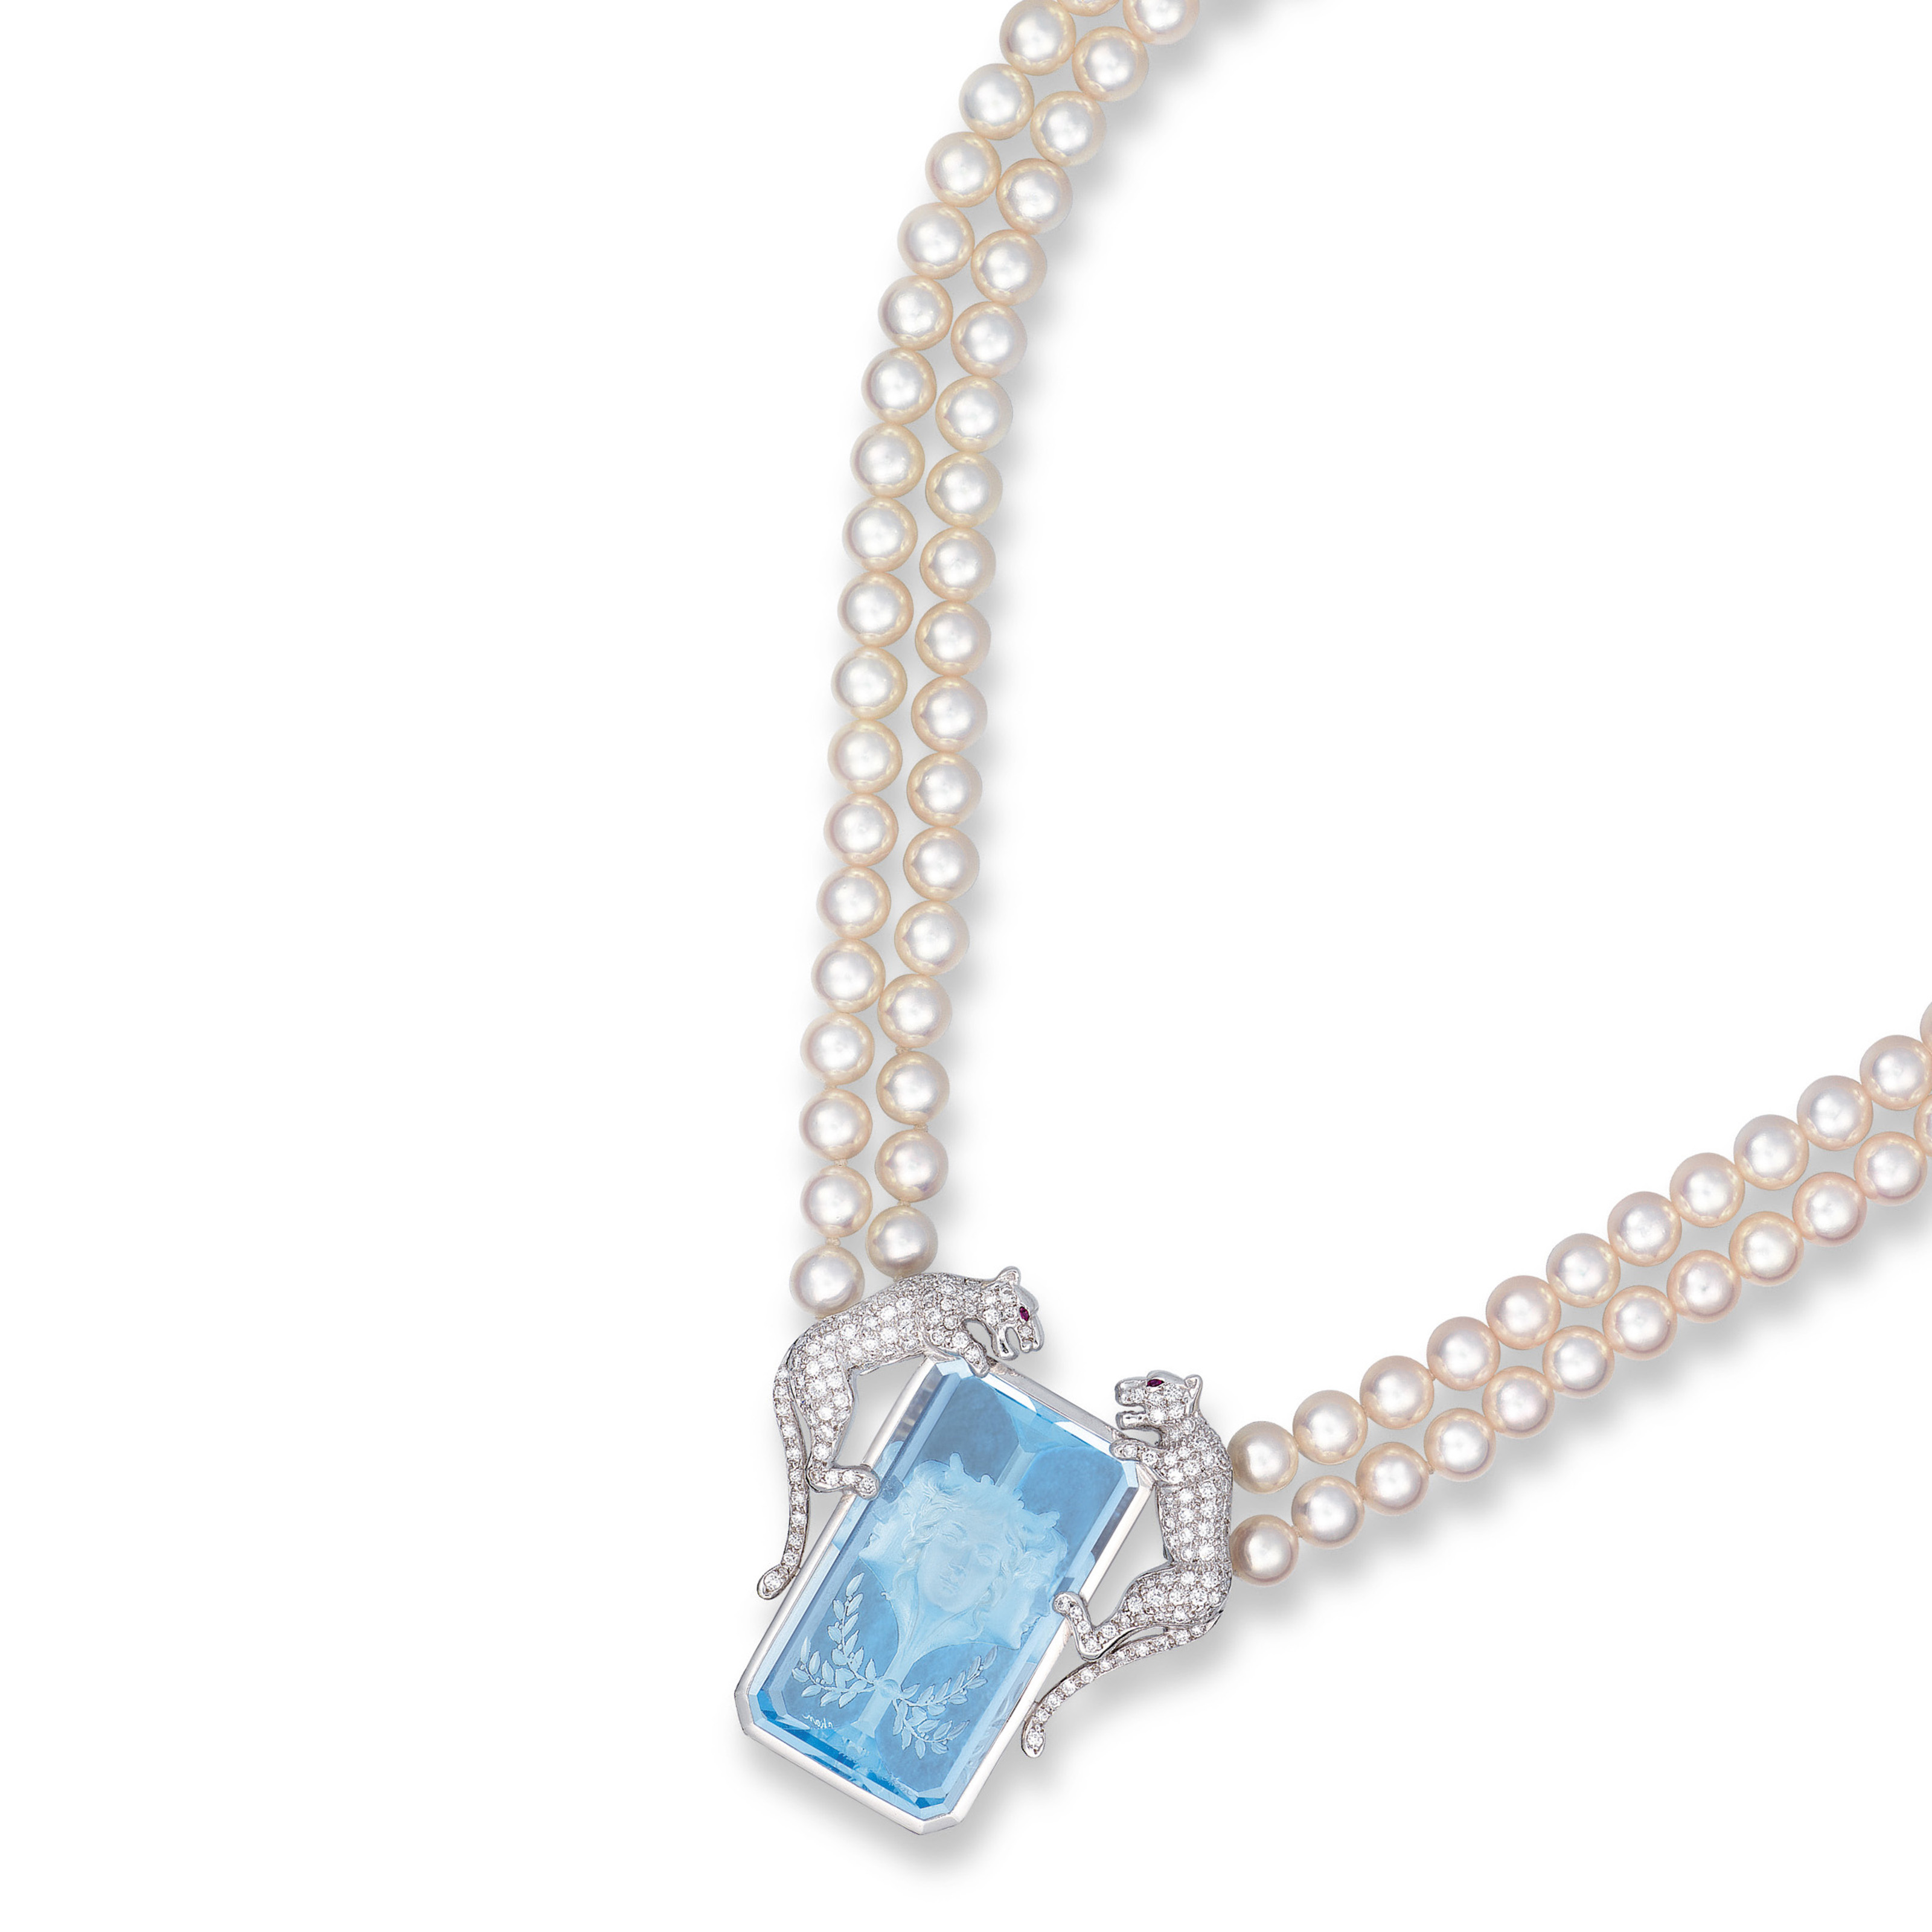 Blue Topaz And Pearl Necklace: A BLUE TOPAZ, DIAMOND, CULTURED PEARL AND RUBY NECKLACE